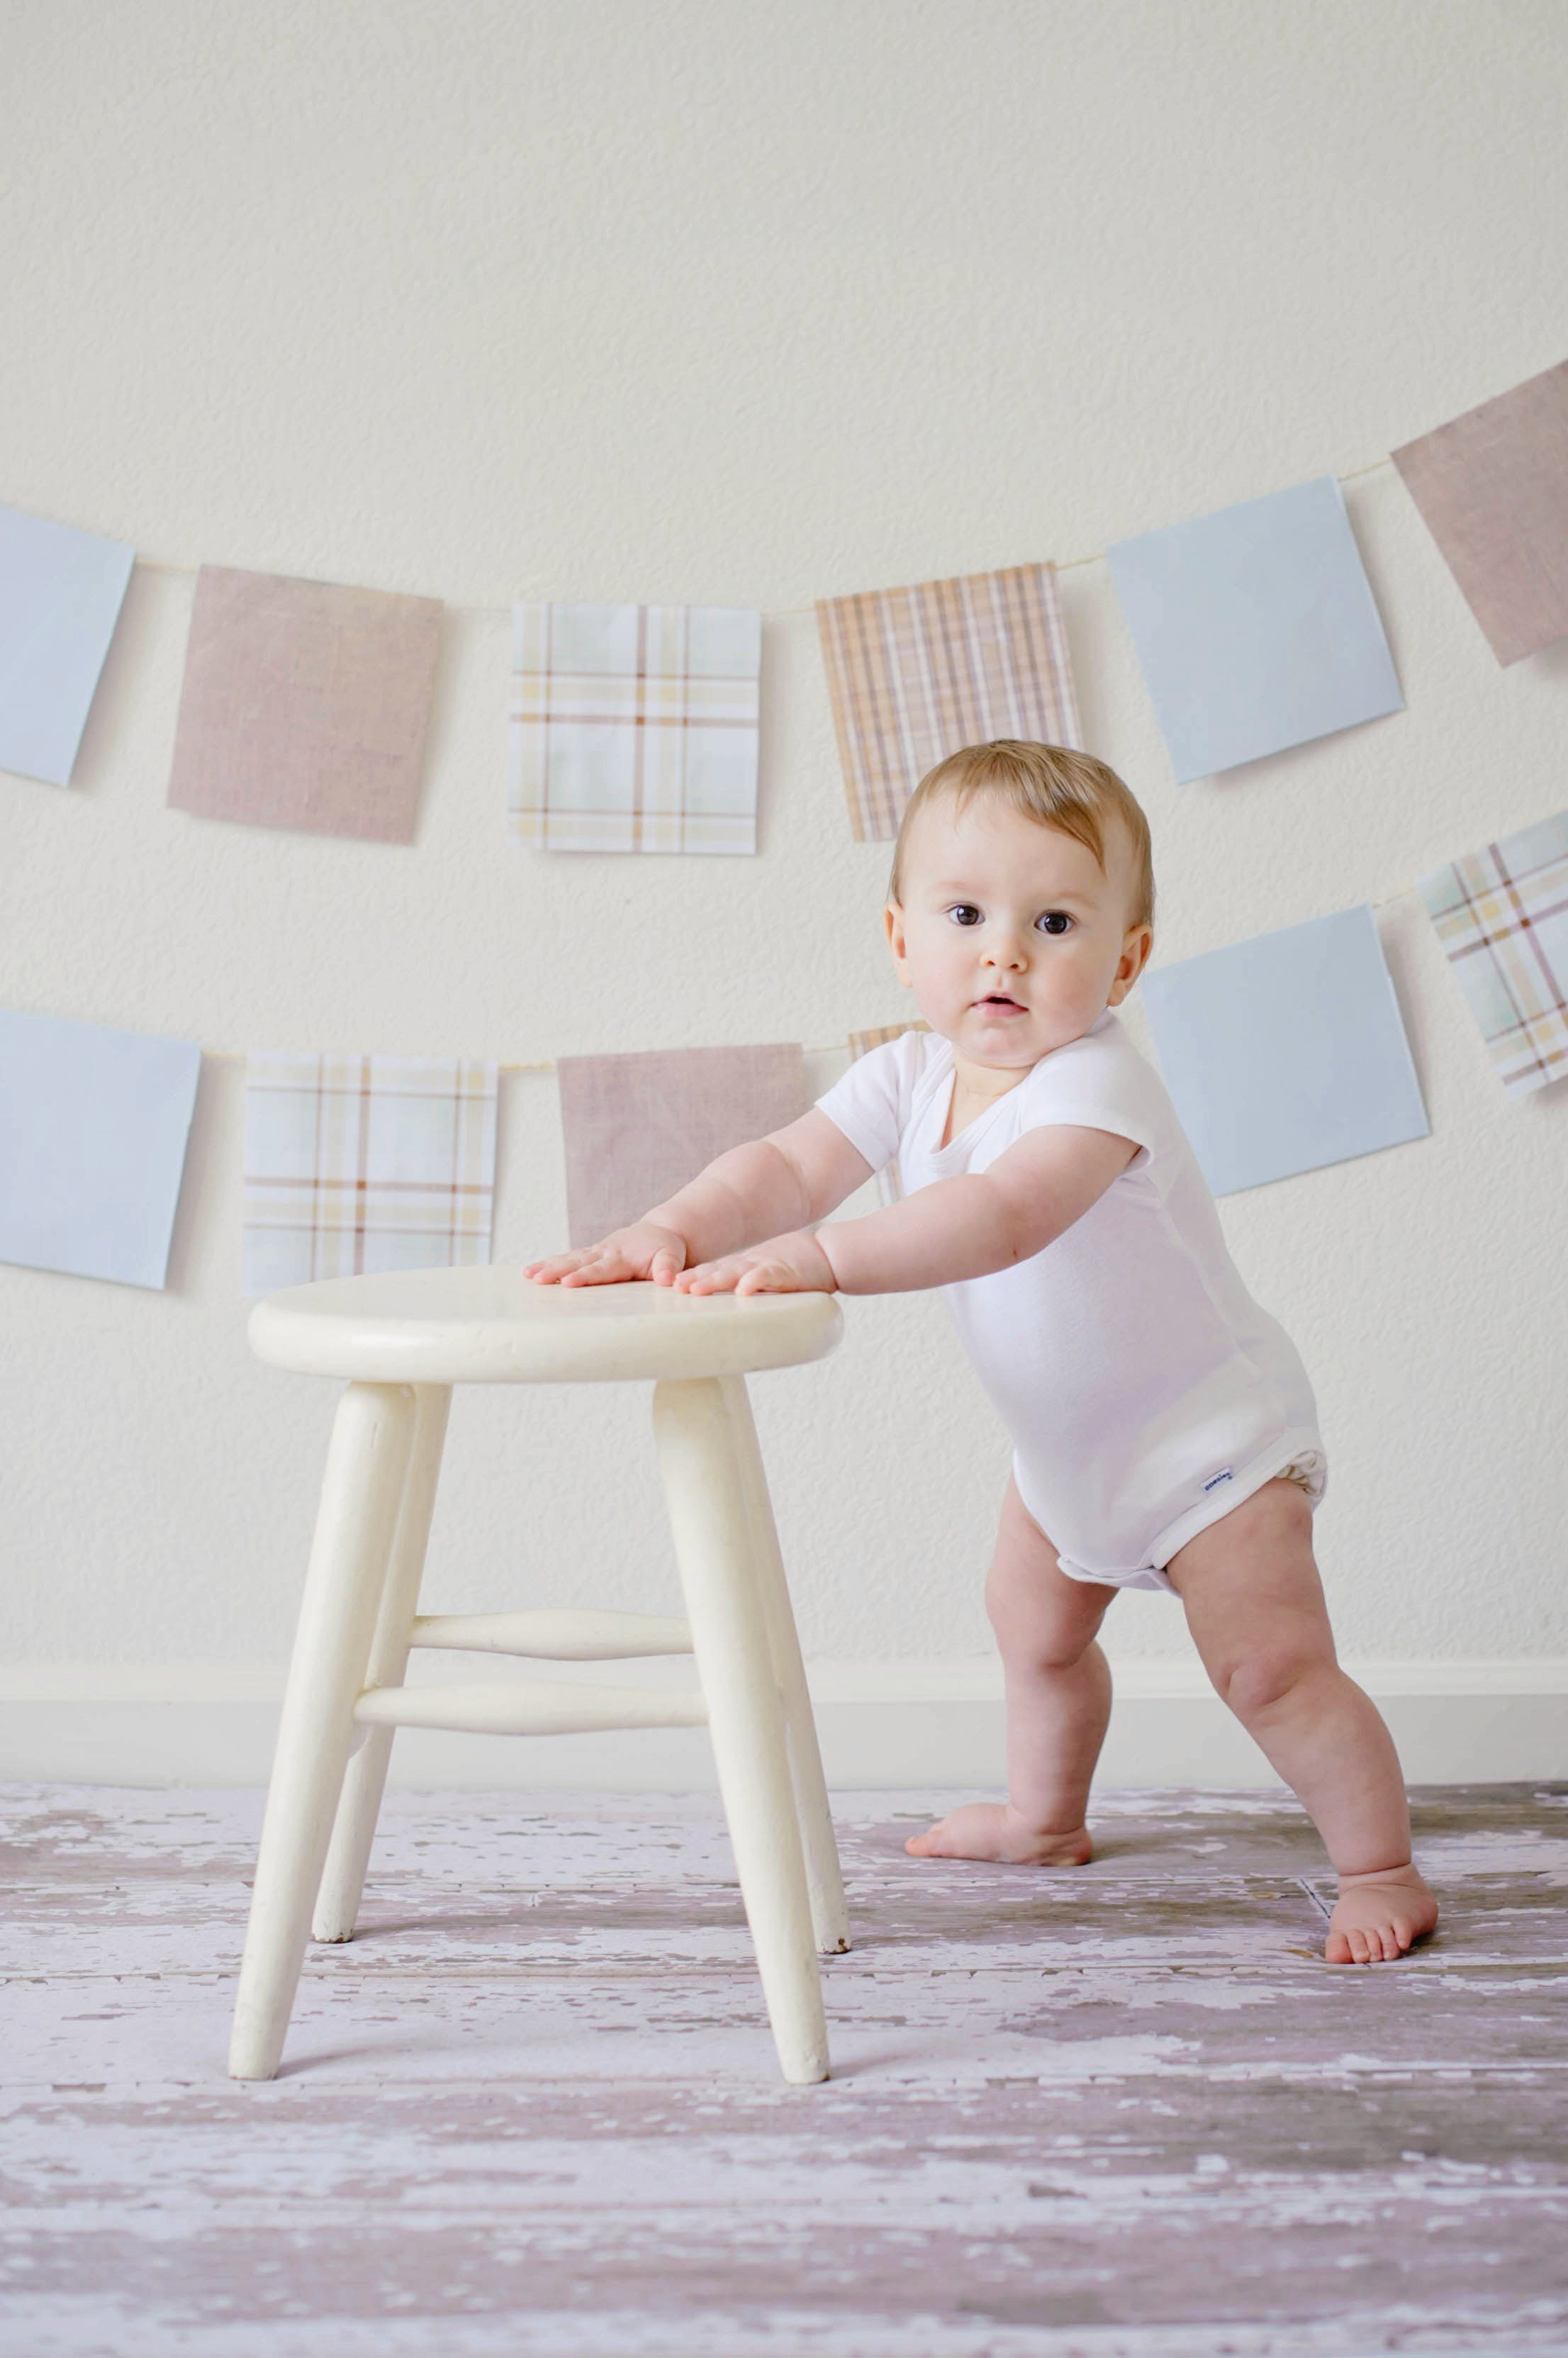 Baby Holding White Wooden Stool